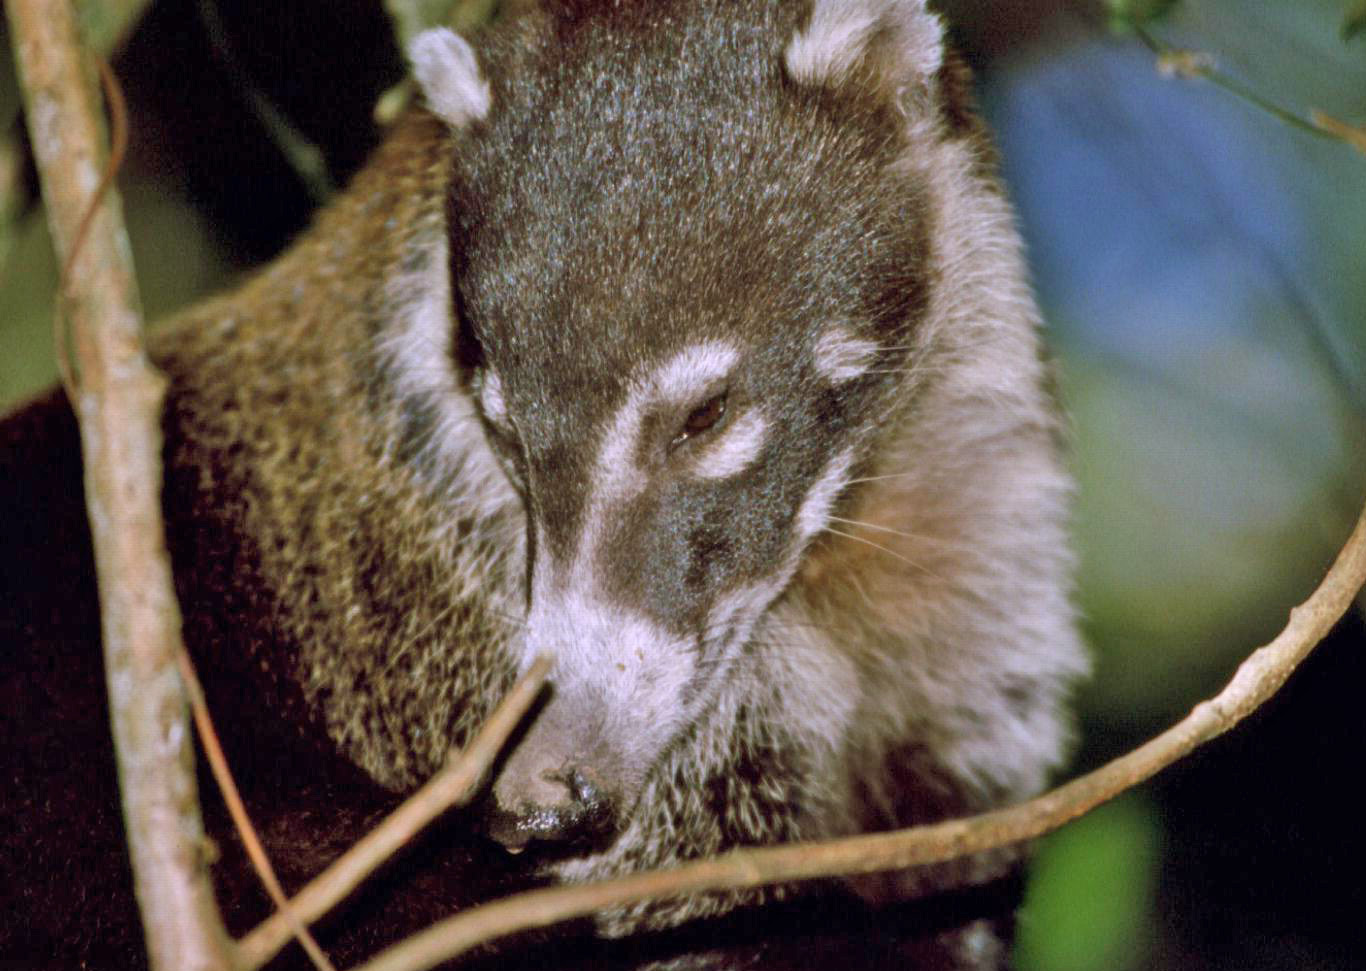 There are many mammals, both large and small, that can be found on the Osa Peninsula and Corcovado National Park